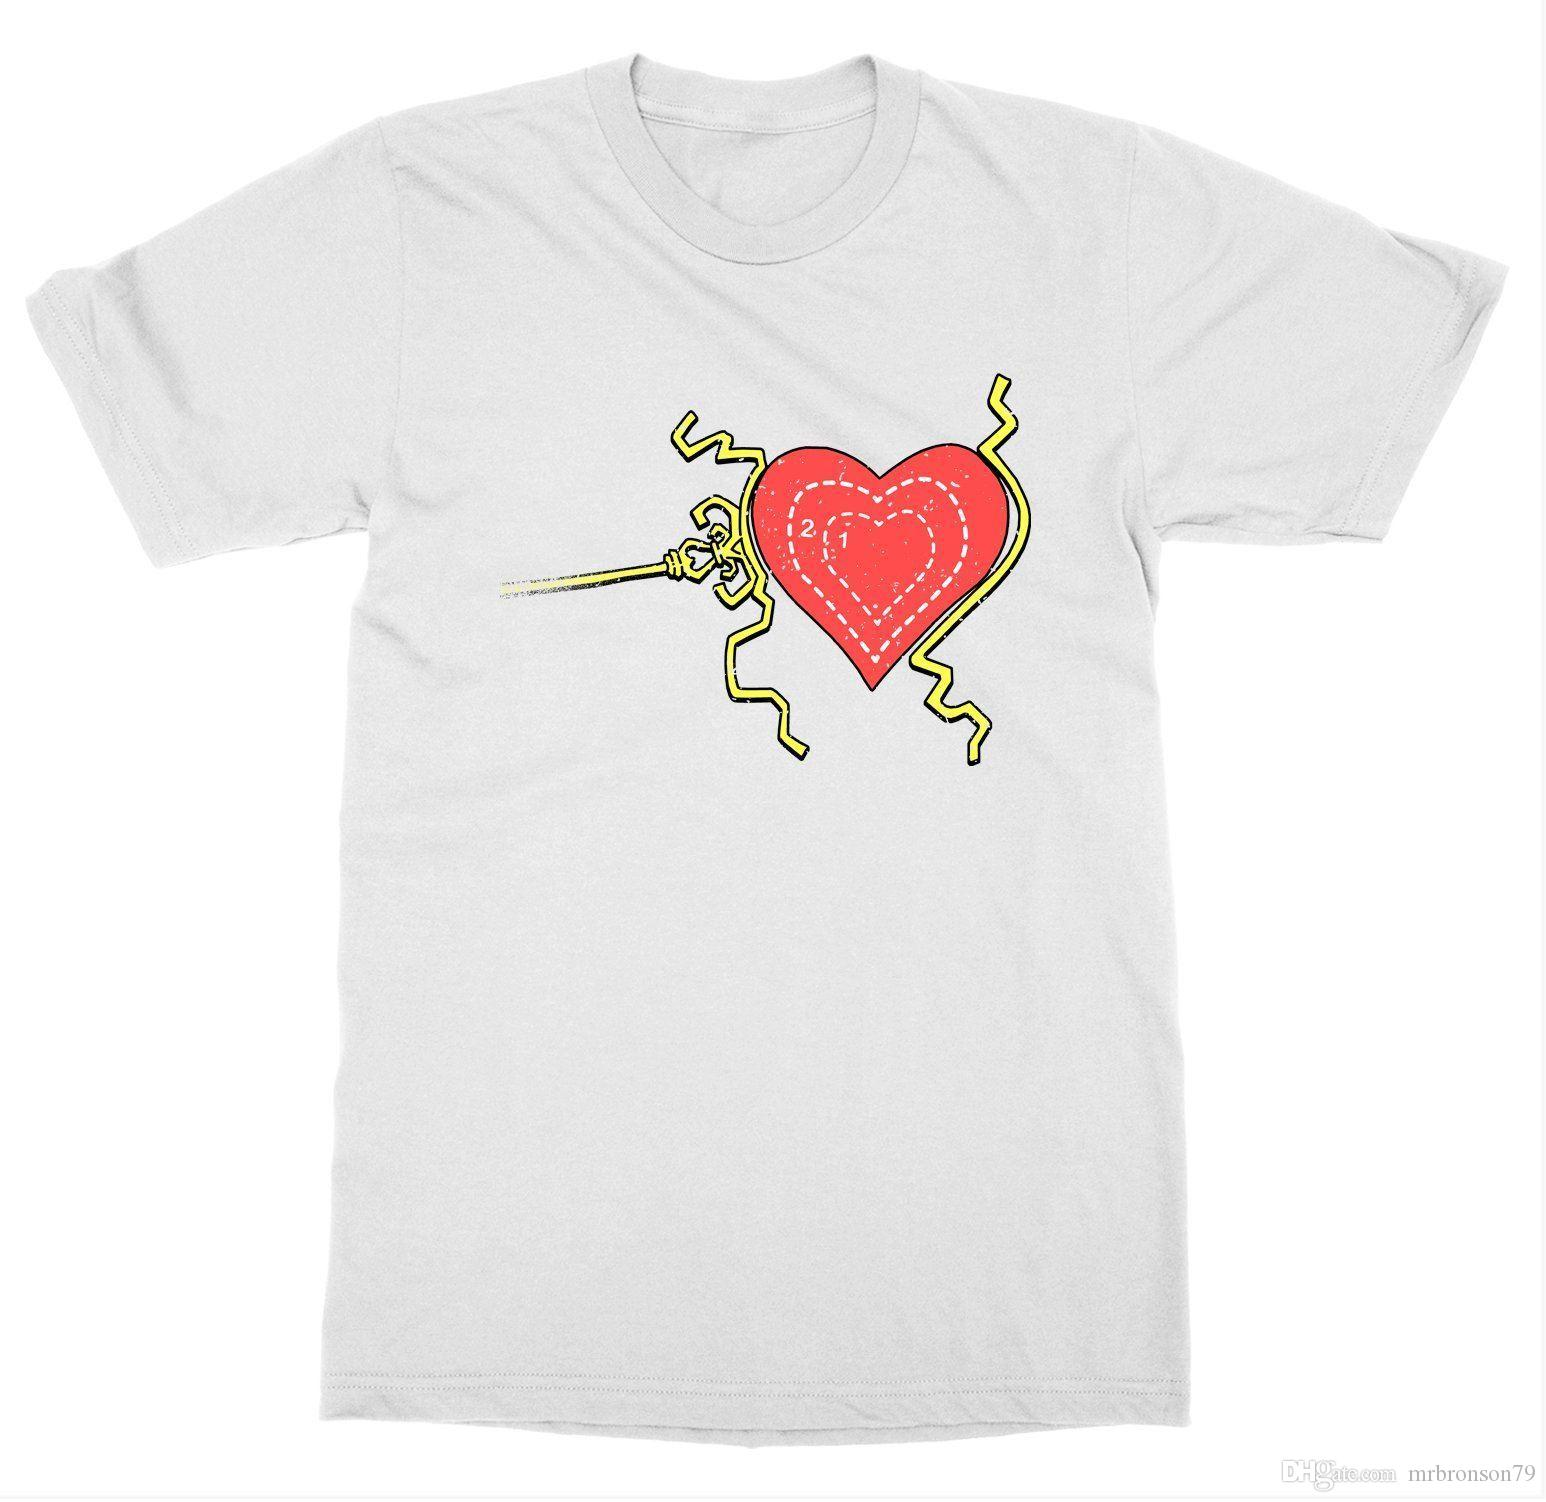 2e0ed146a1bb Grinch Heart 'How the Grinch Stole Christmas' T-Shirt Holiday Movie Xmas  Gift